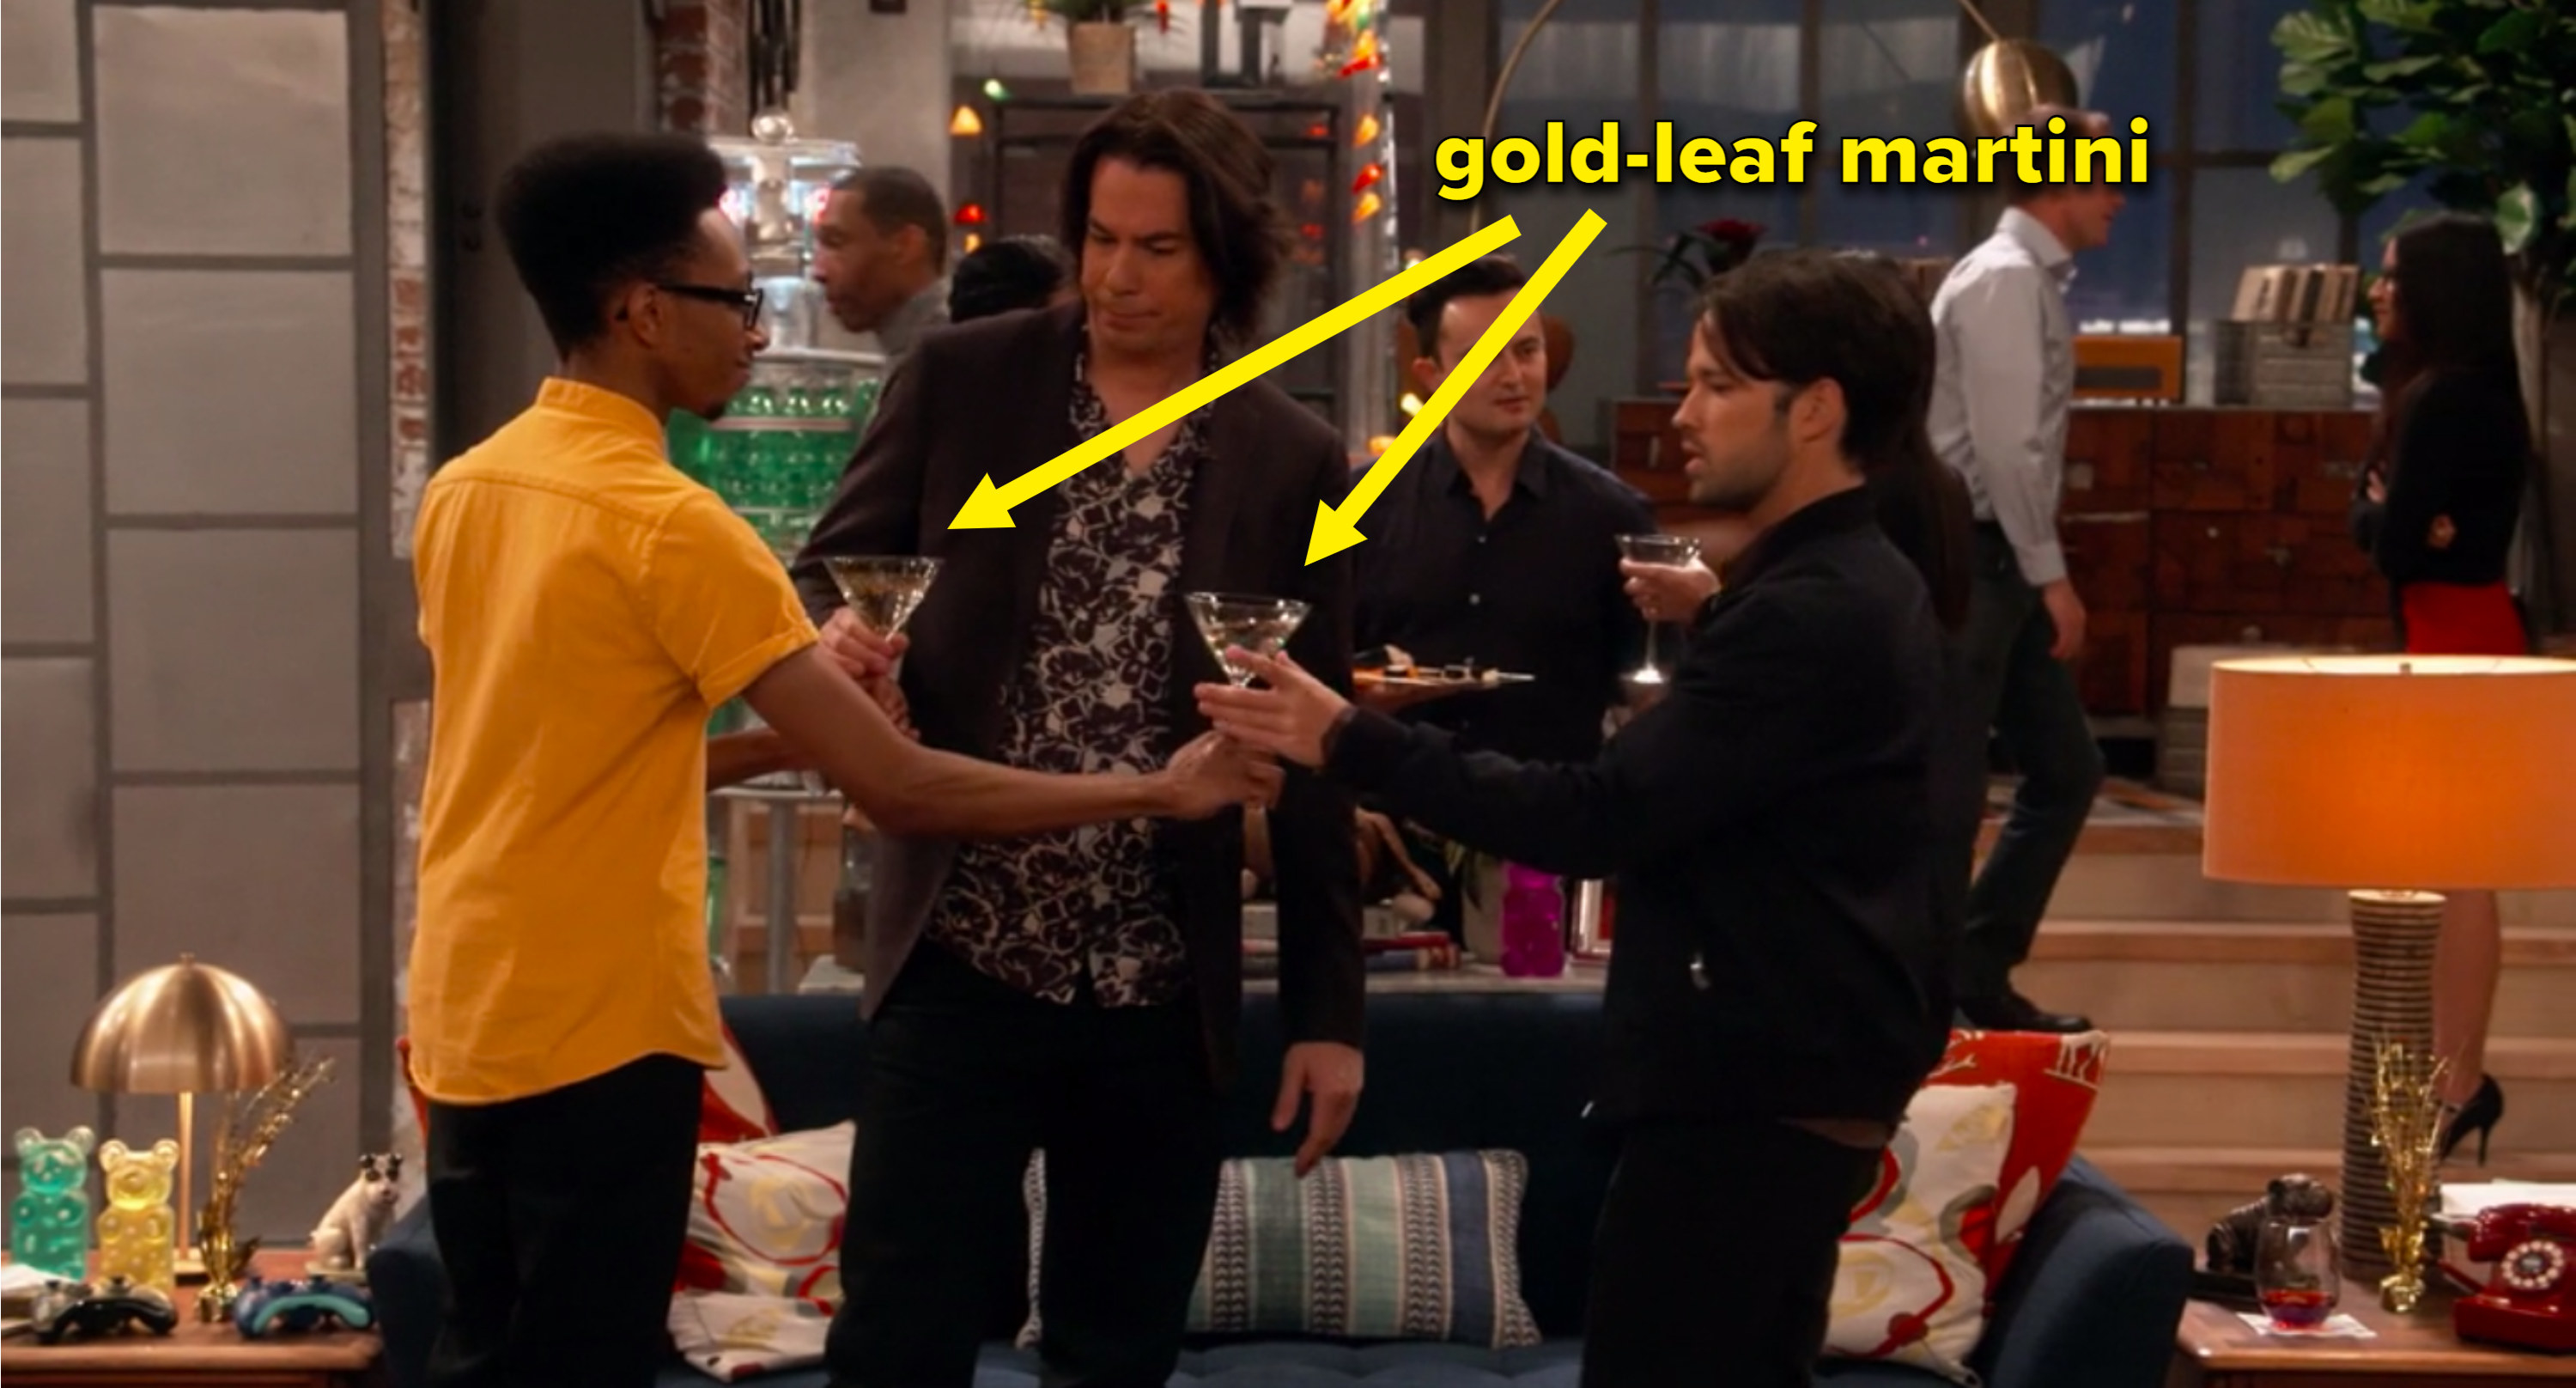 Spencer toasting gold leaf martinis with two people at his house party